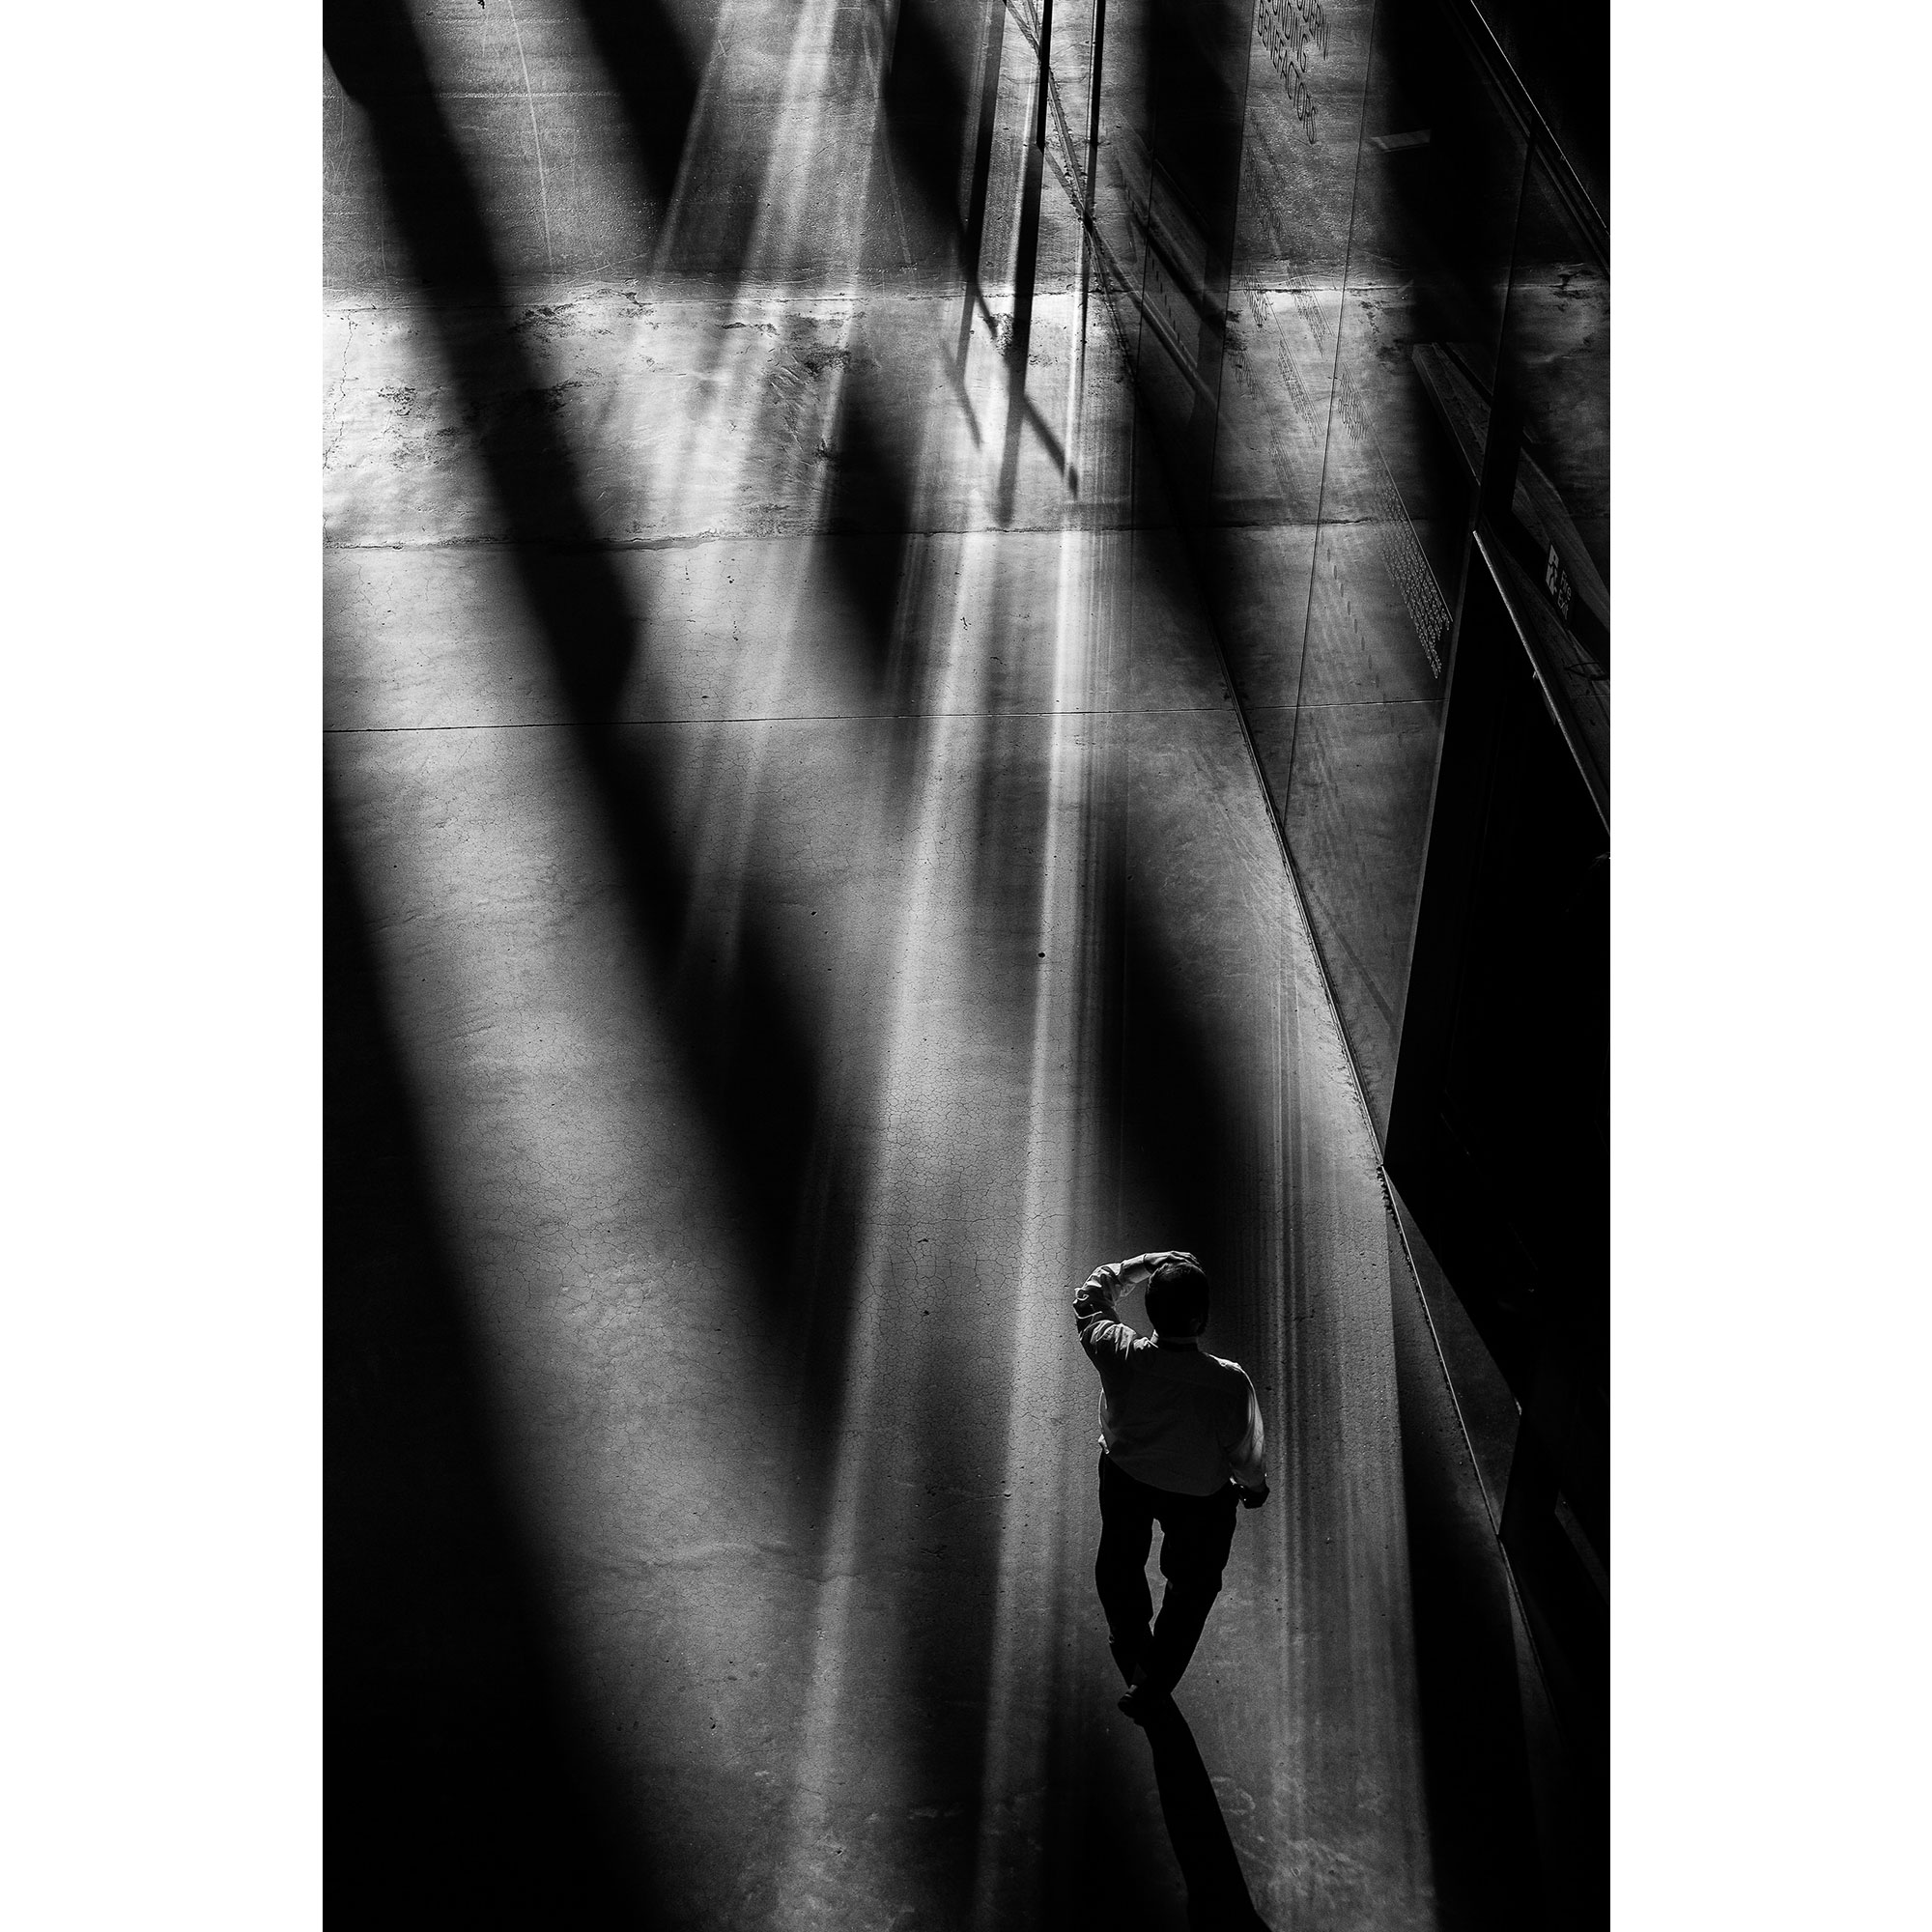 Craig reilly photography tate modern light reflections bnw